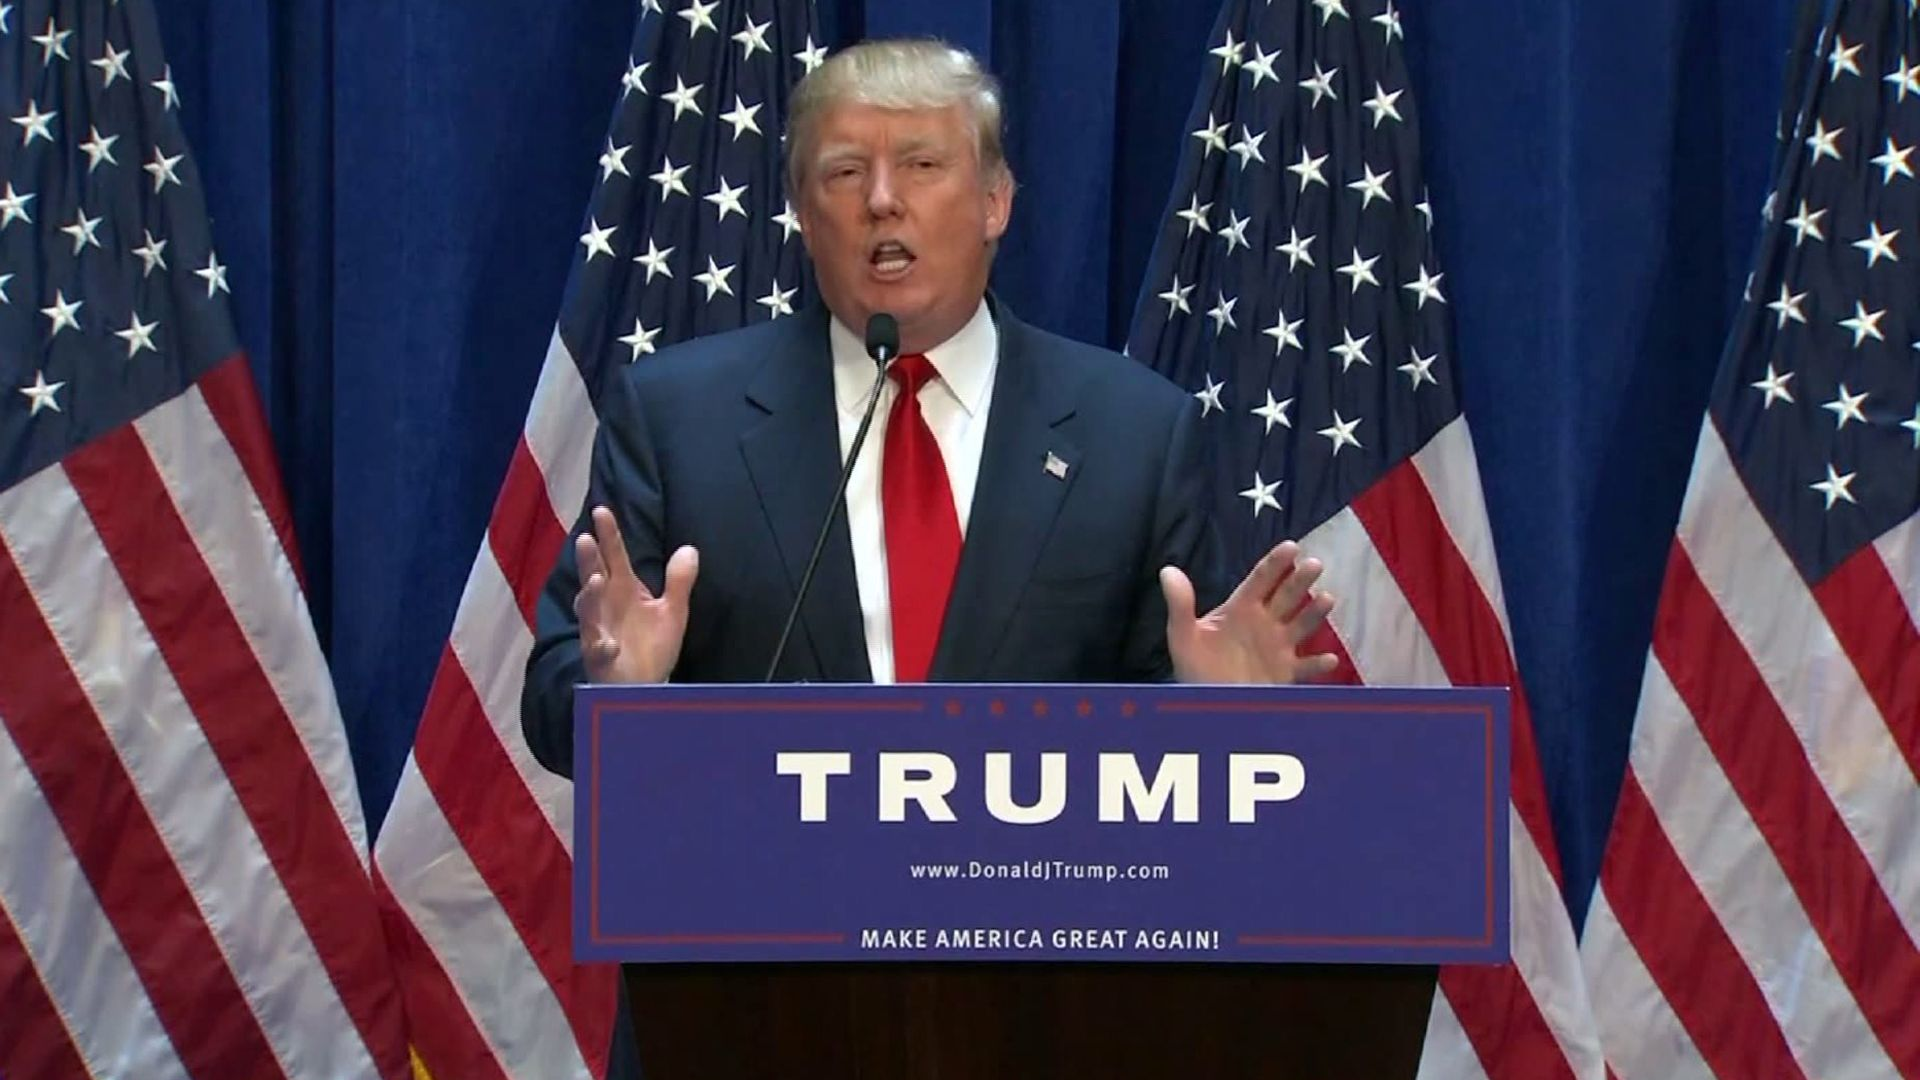 10 Reasons Donald Trump Will Win The 2016 Presidential Election